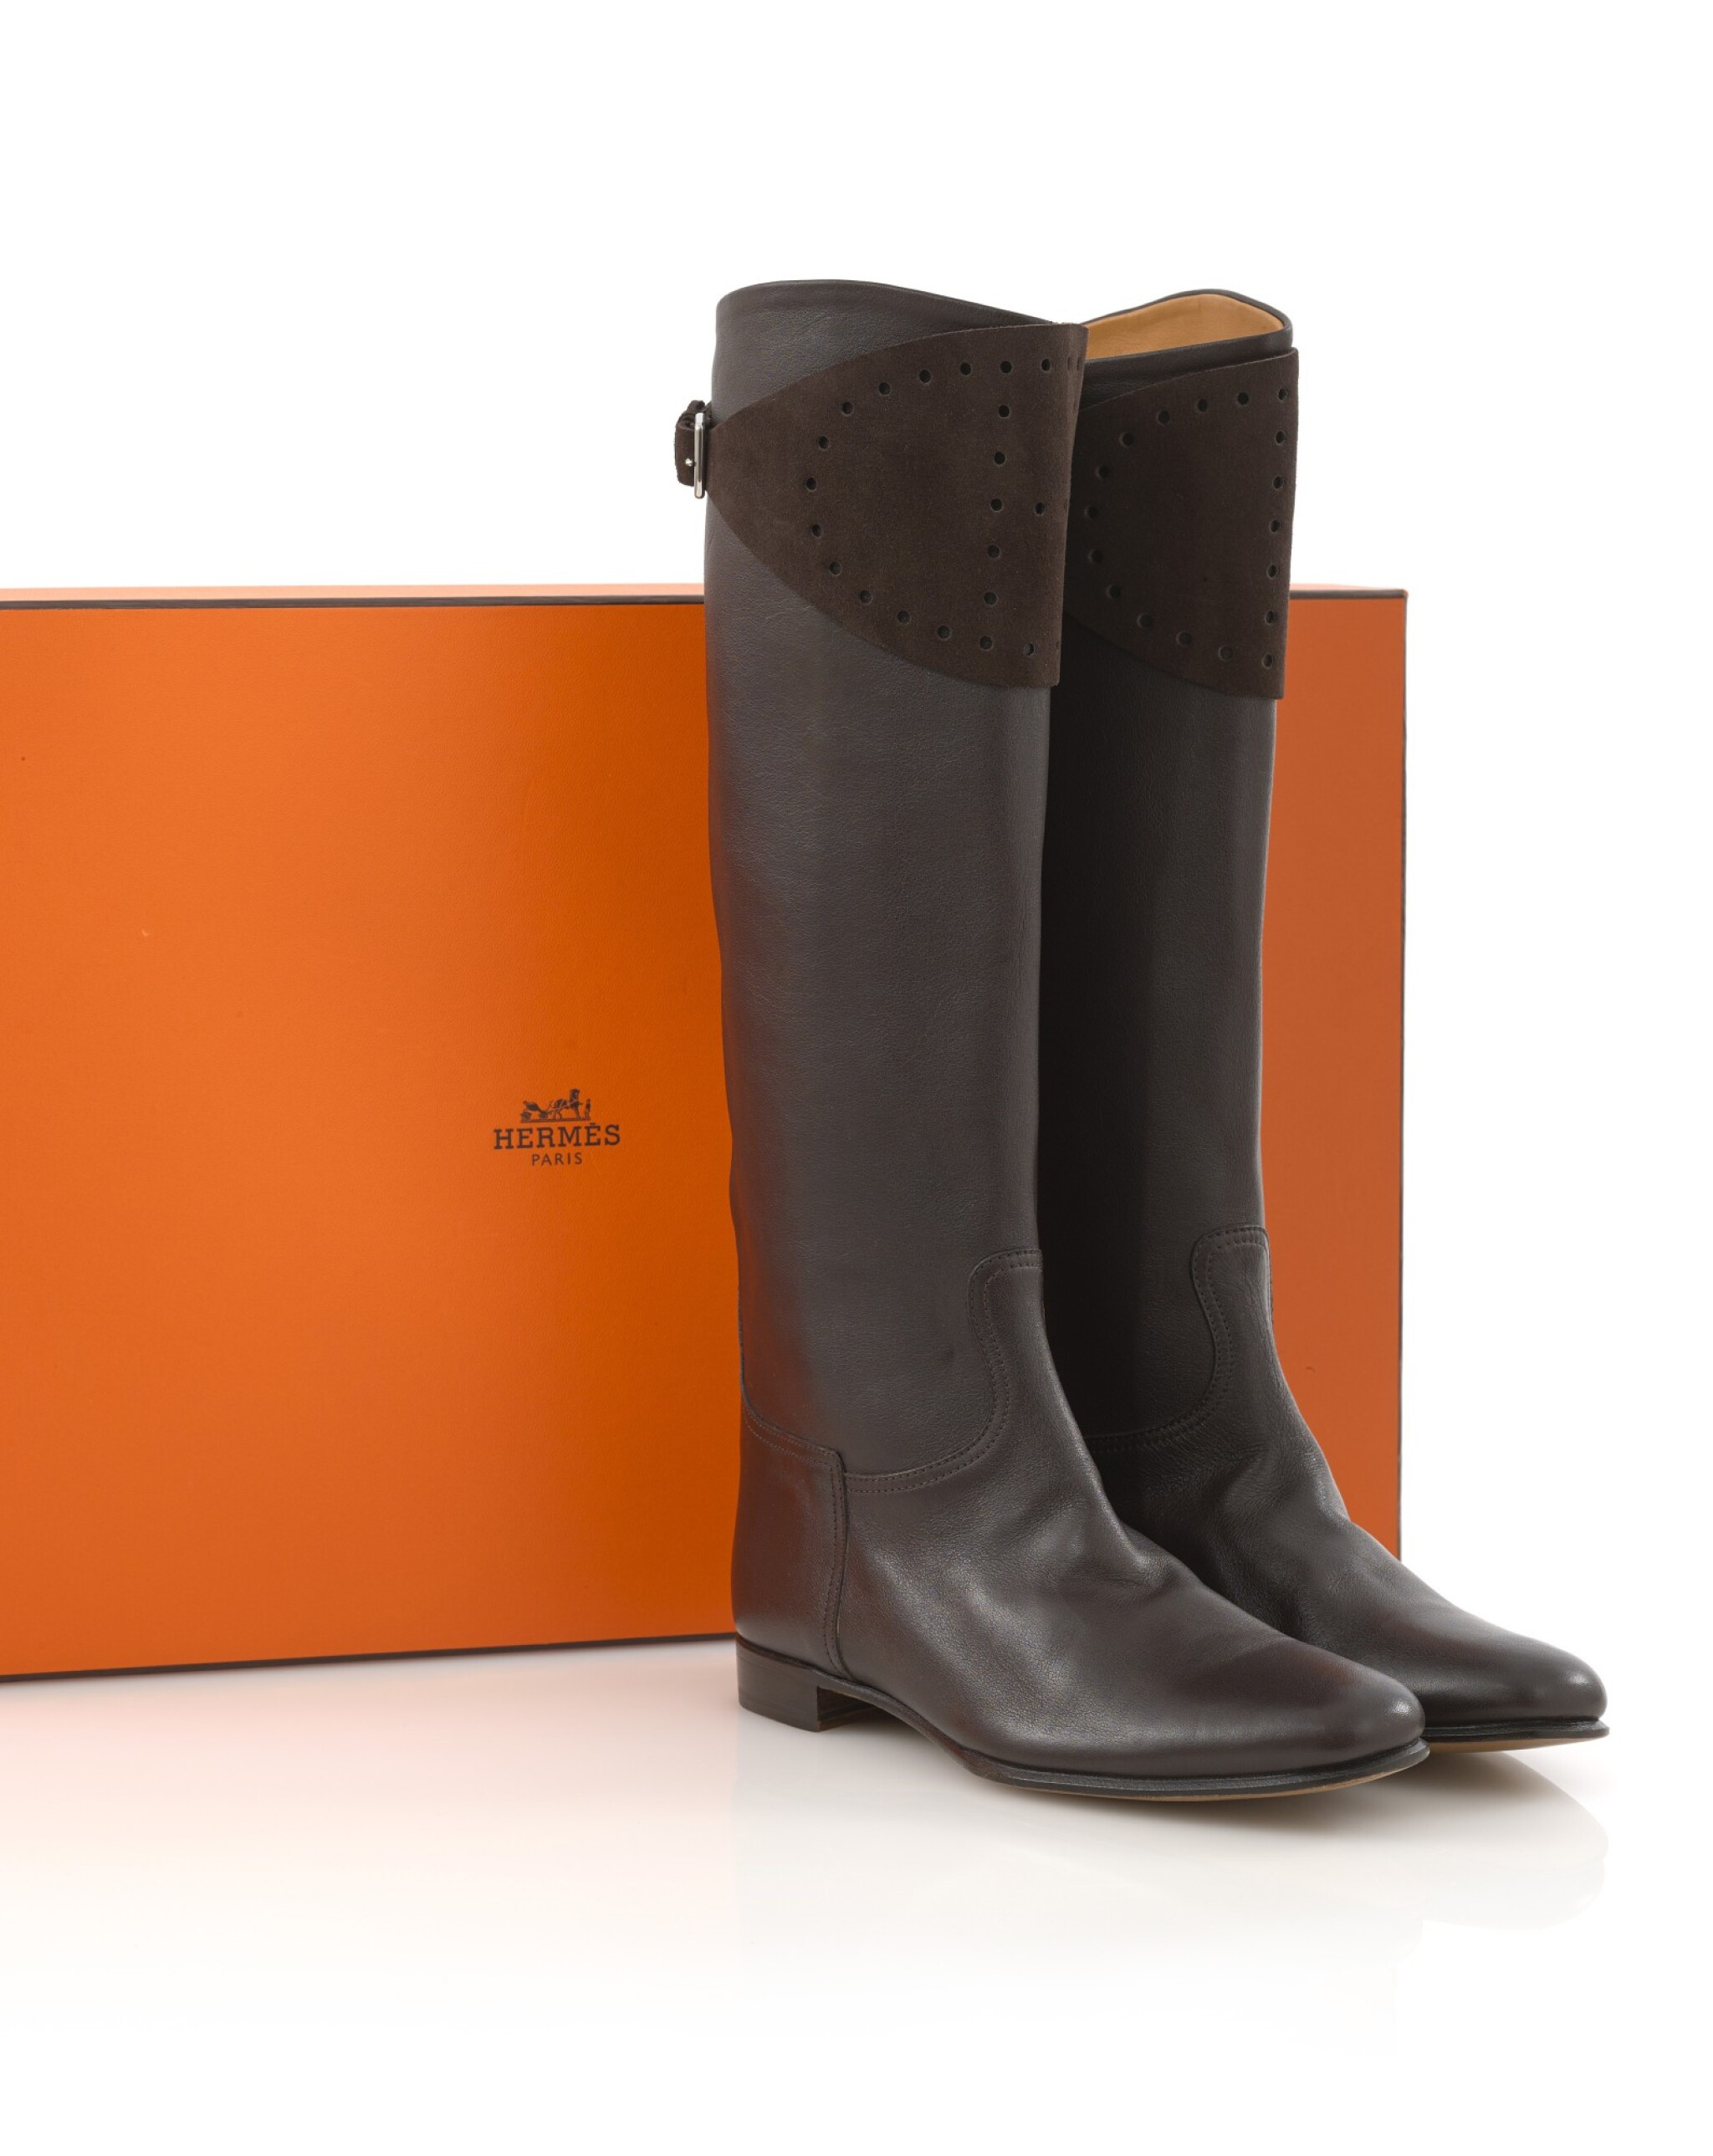 Brown leather and suede boots, Hermès